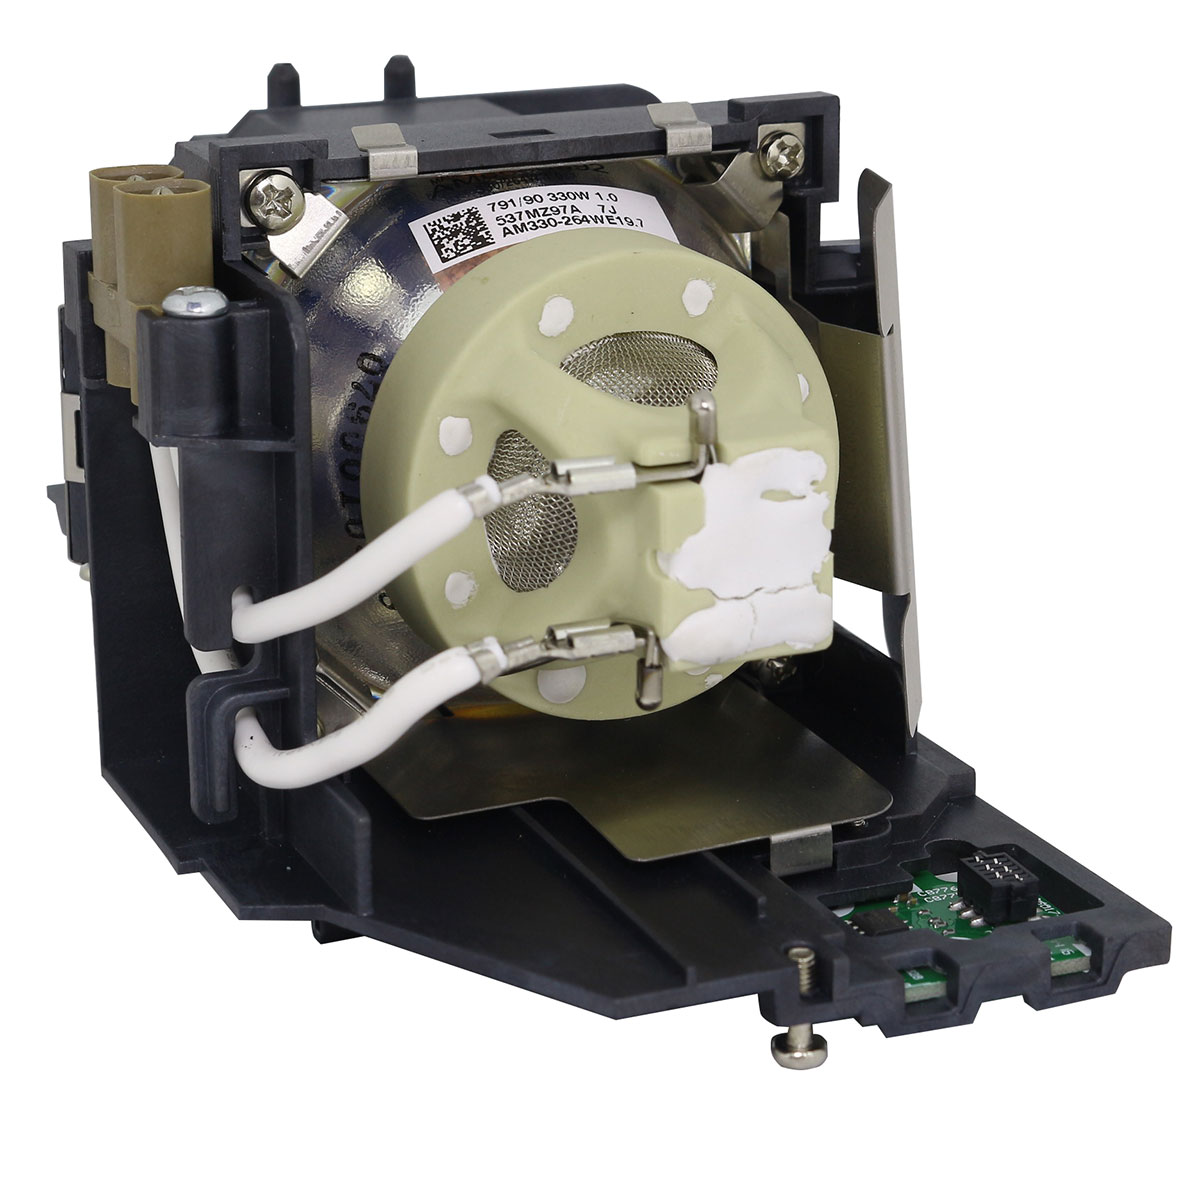 Original Philips Projector Lamp Replacement for Panasonic PT-VZ575N (Bulb Only) - image 2 of 5